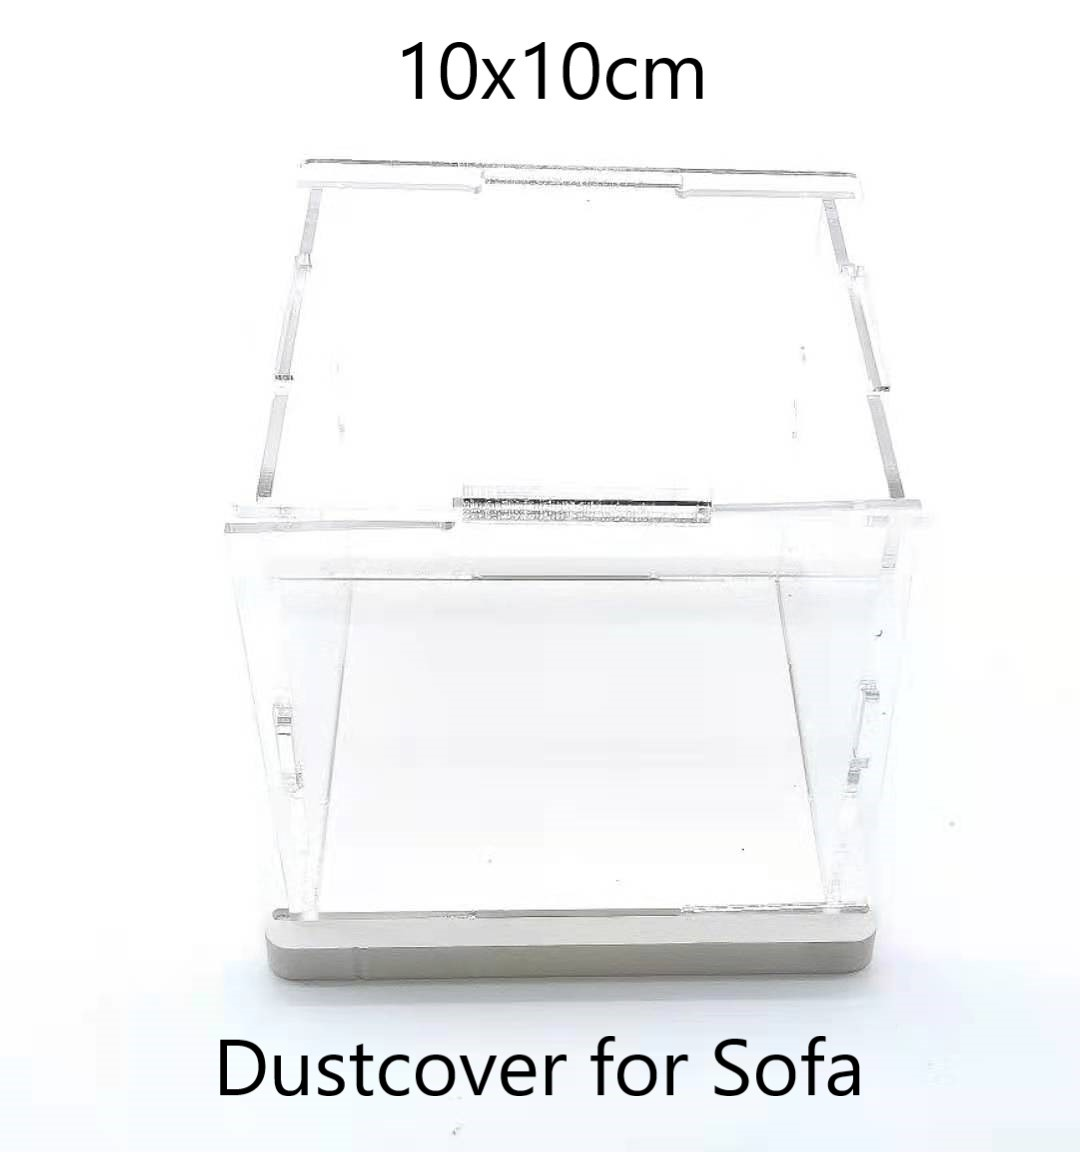 Dust cover for Sofa $6.90